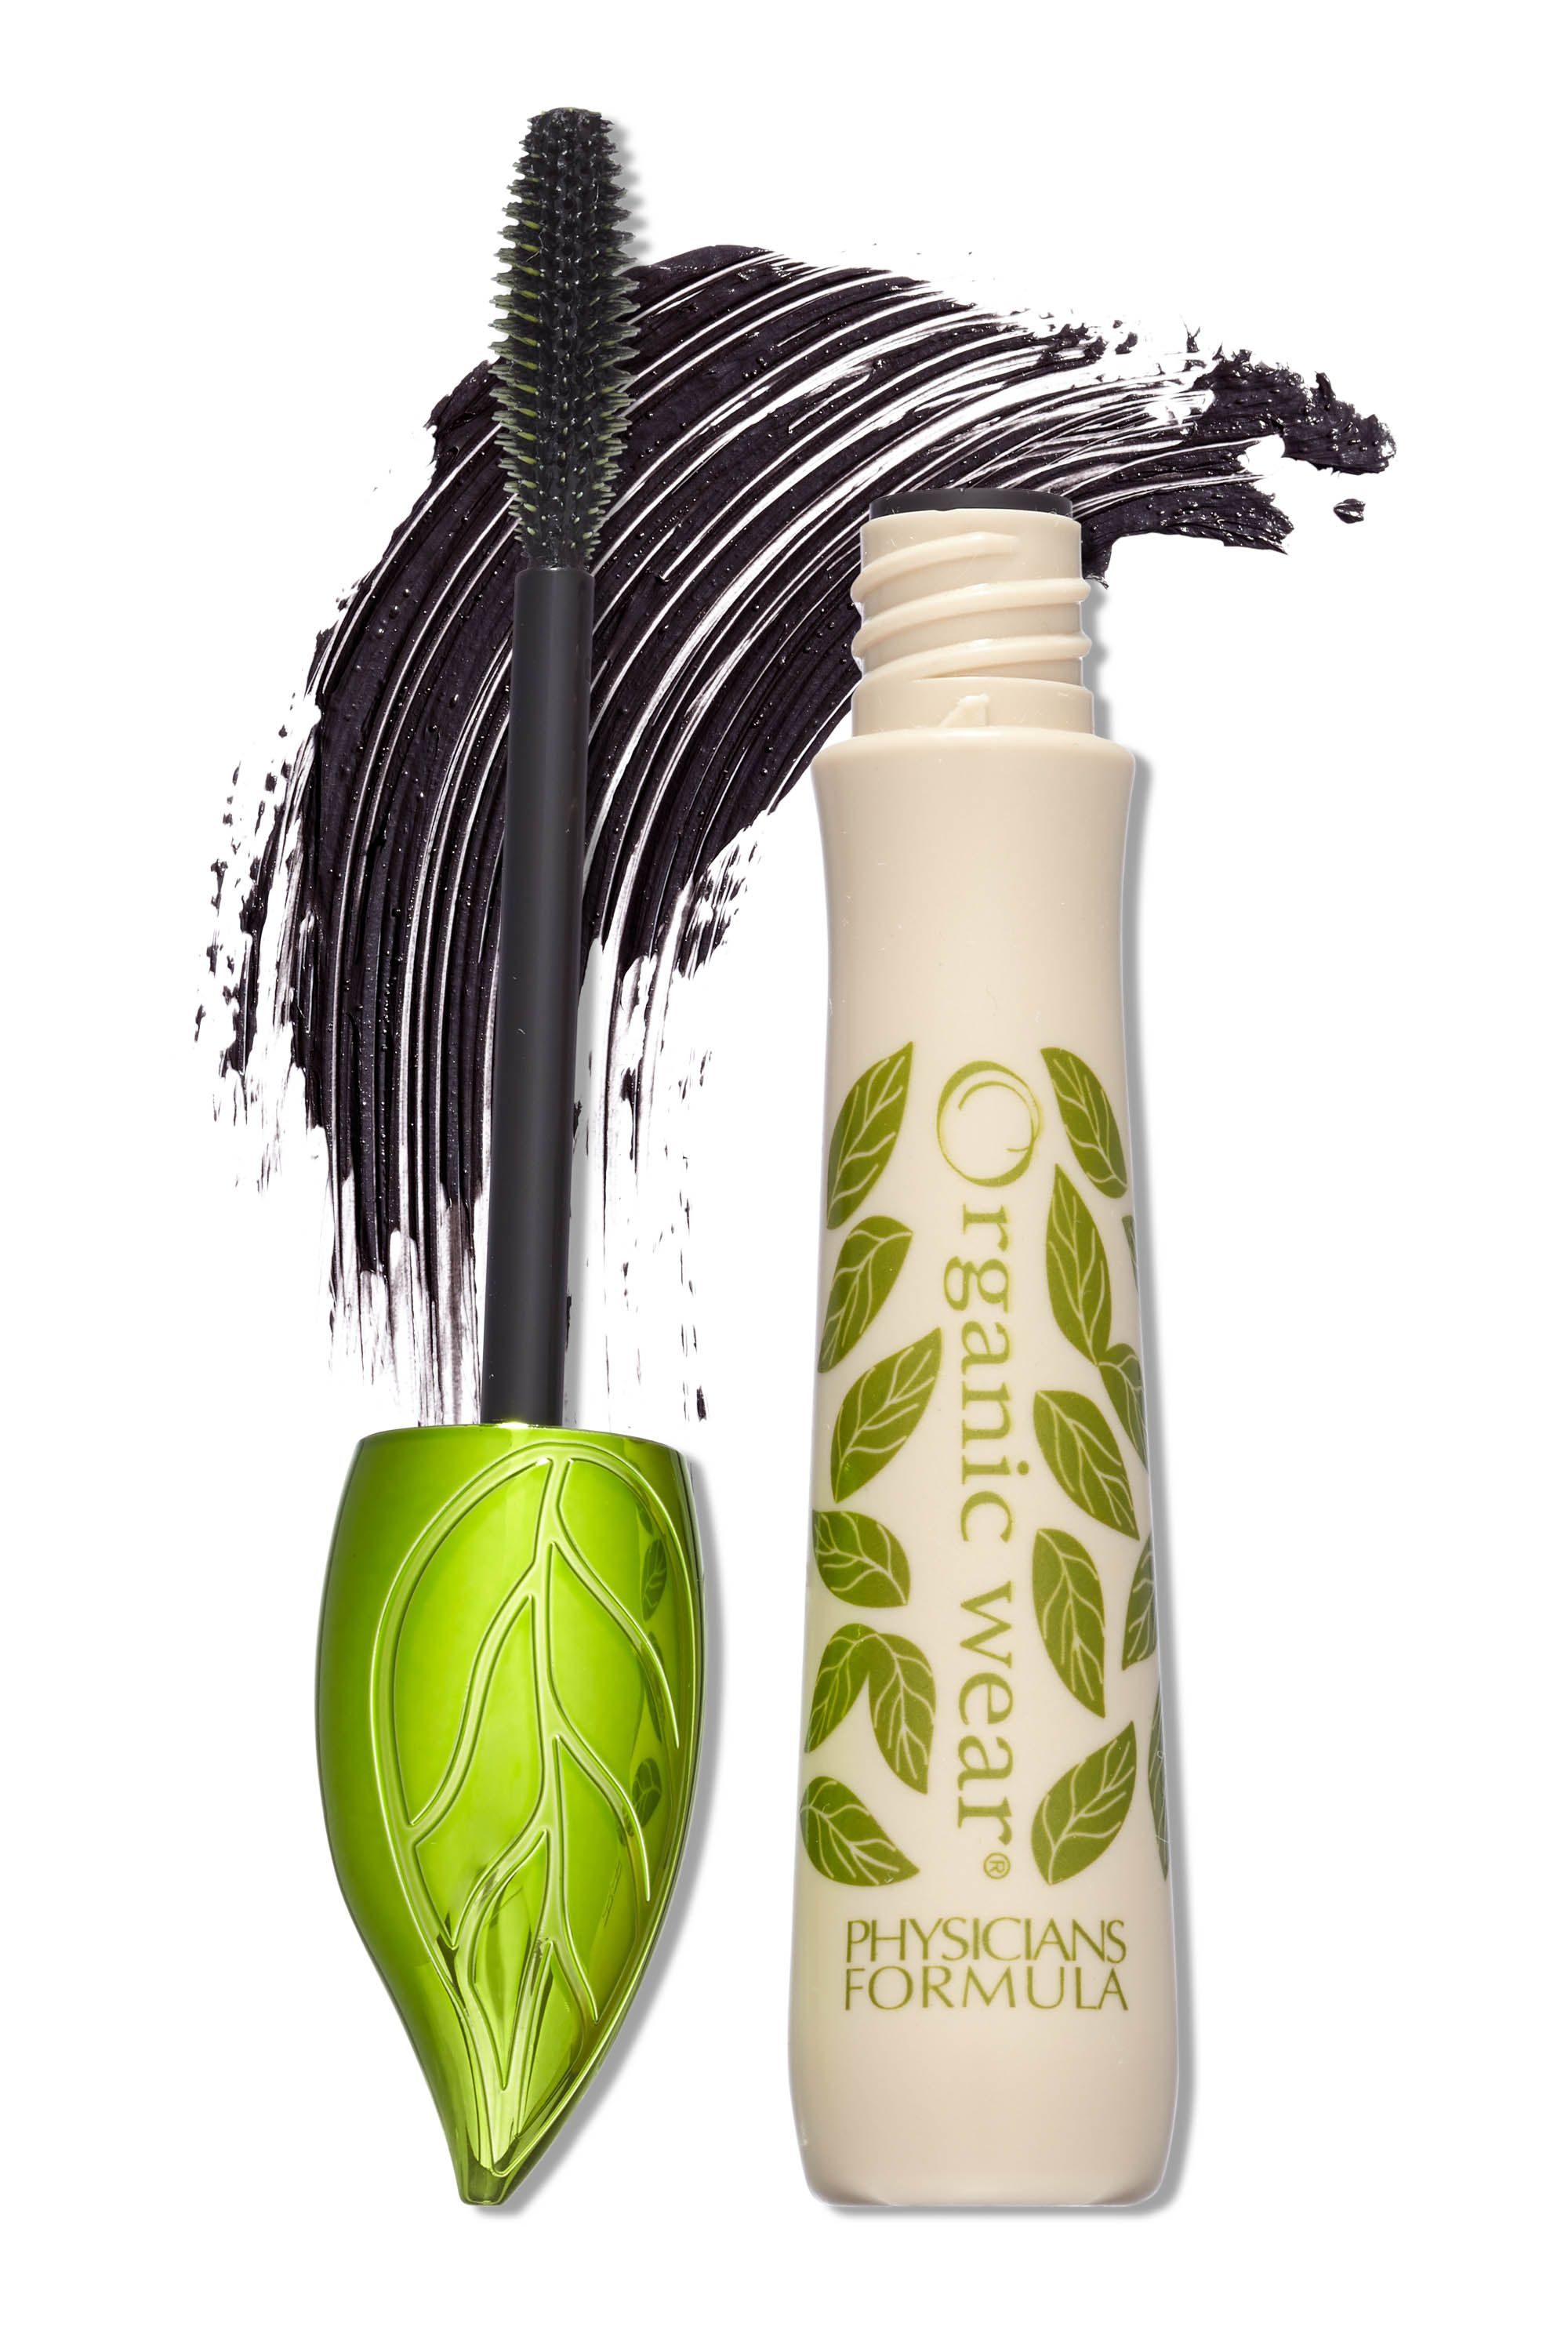 """<p>""""Love. This. Stuff,"""" says dermatologist Mona Gohara, MD, of ultrablack <a href=""""http://www.physiciansformula.com/en-us/productdetail/eyes/mascara/01062.html"""" target=""""_blank"""">Physicians Formula Organic Wear Natural Mascara</a>, with soothing cucumber and aloe. """"Volumizing, lengthening, and hypoallergenic? Music to my eyes.""""</p>"""